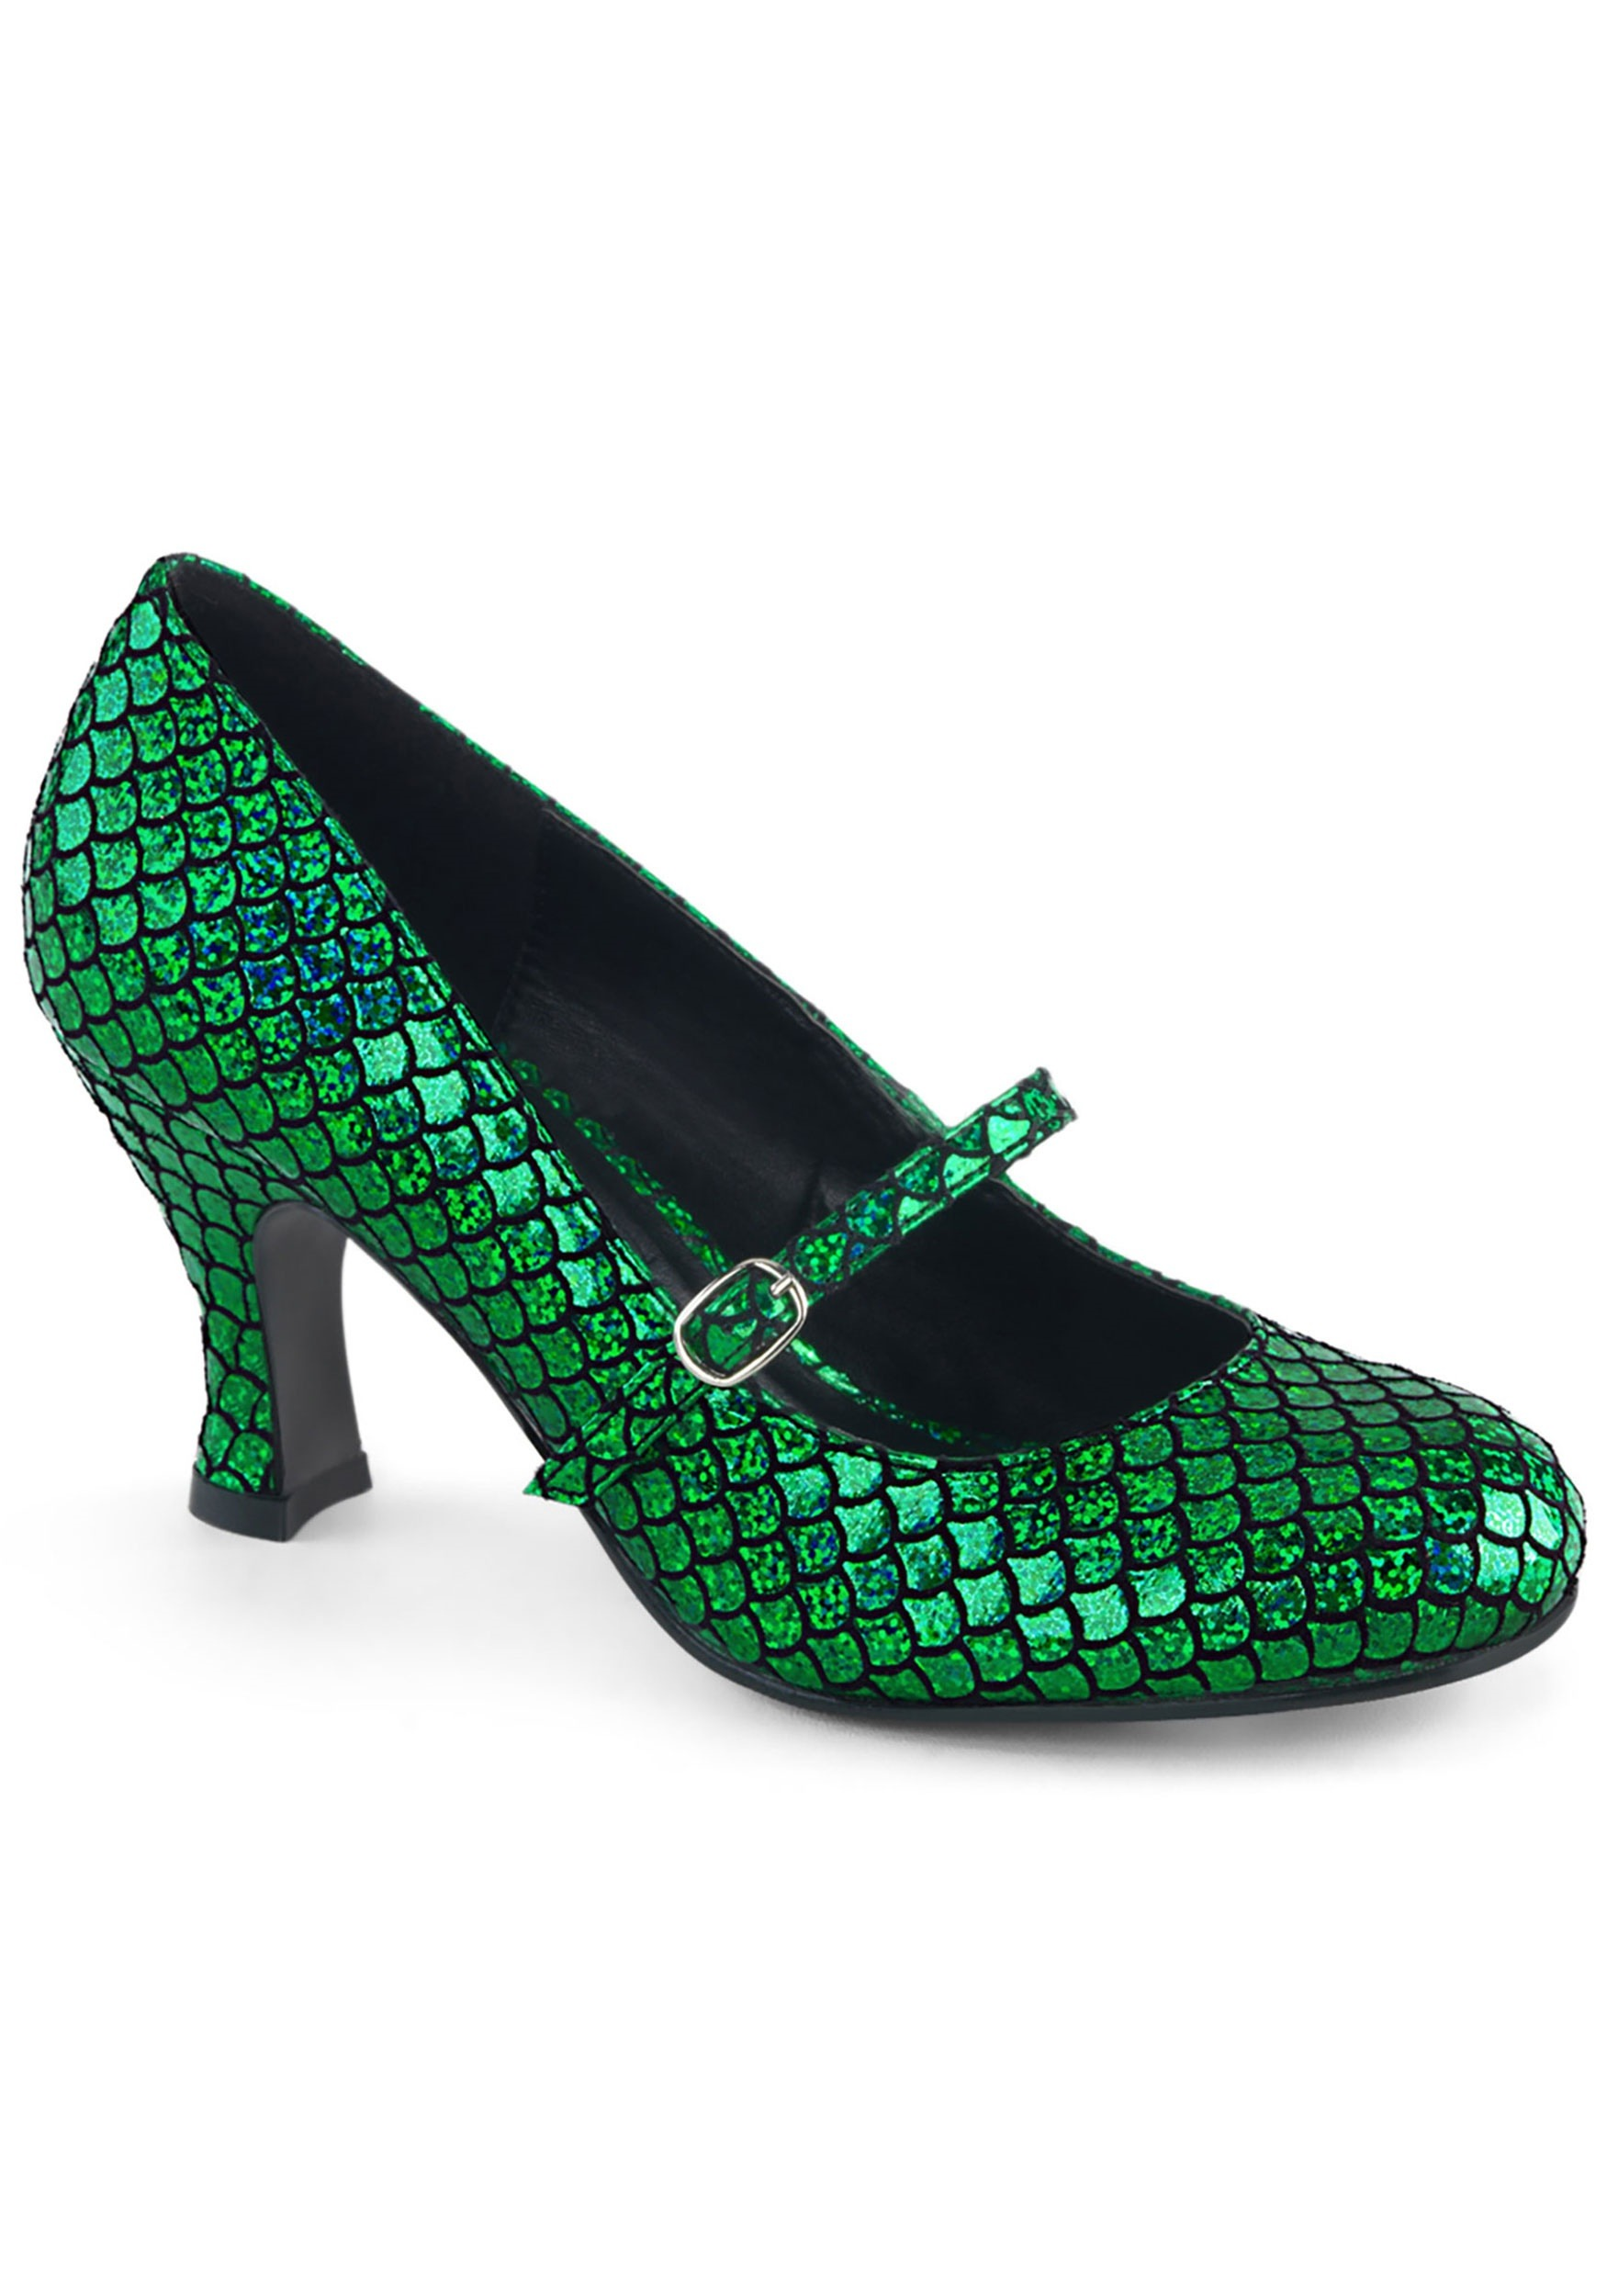 INOpets.com Anything for Pets Parents & Their Pets Green Mermaid Women's Heels